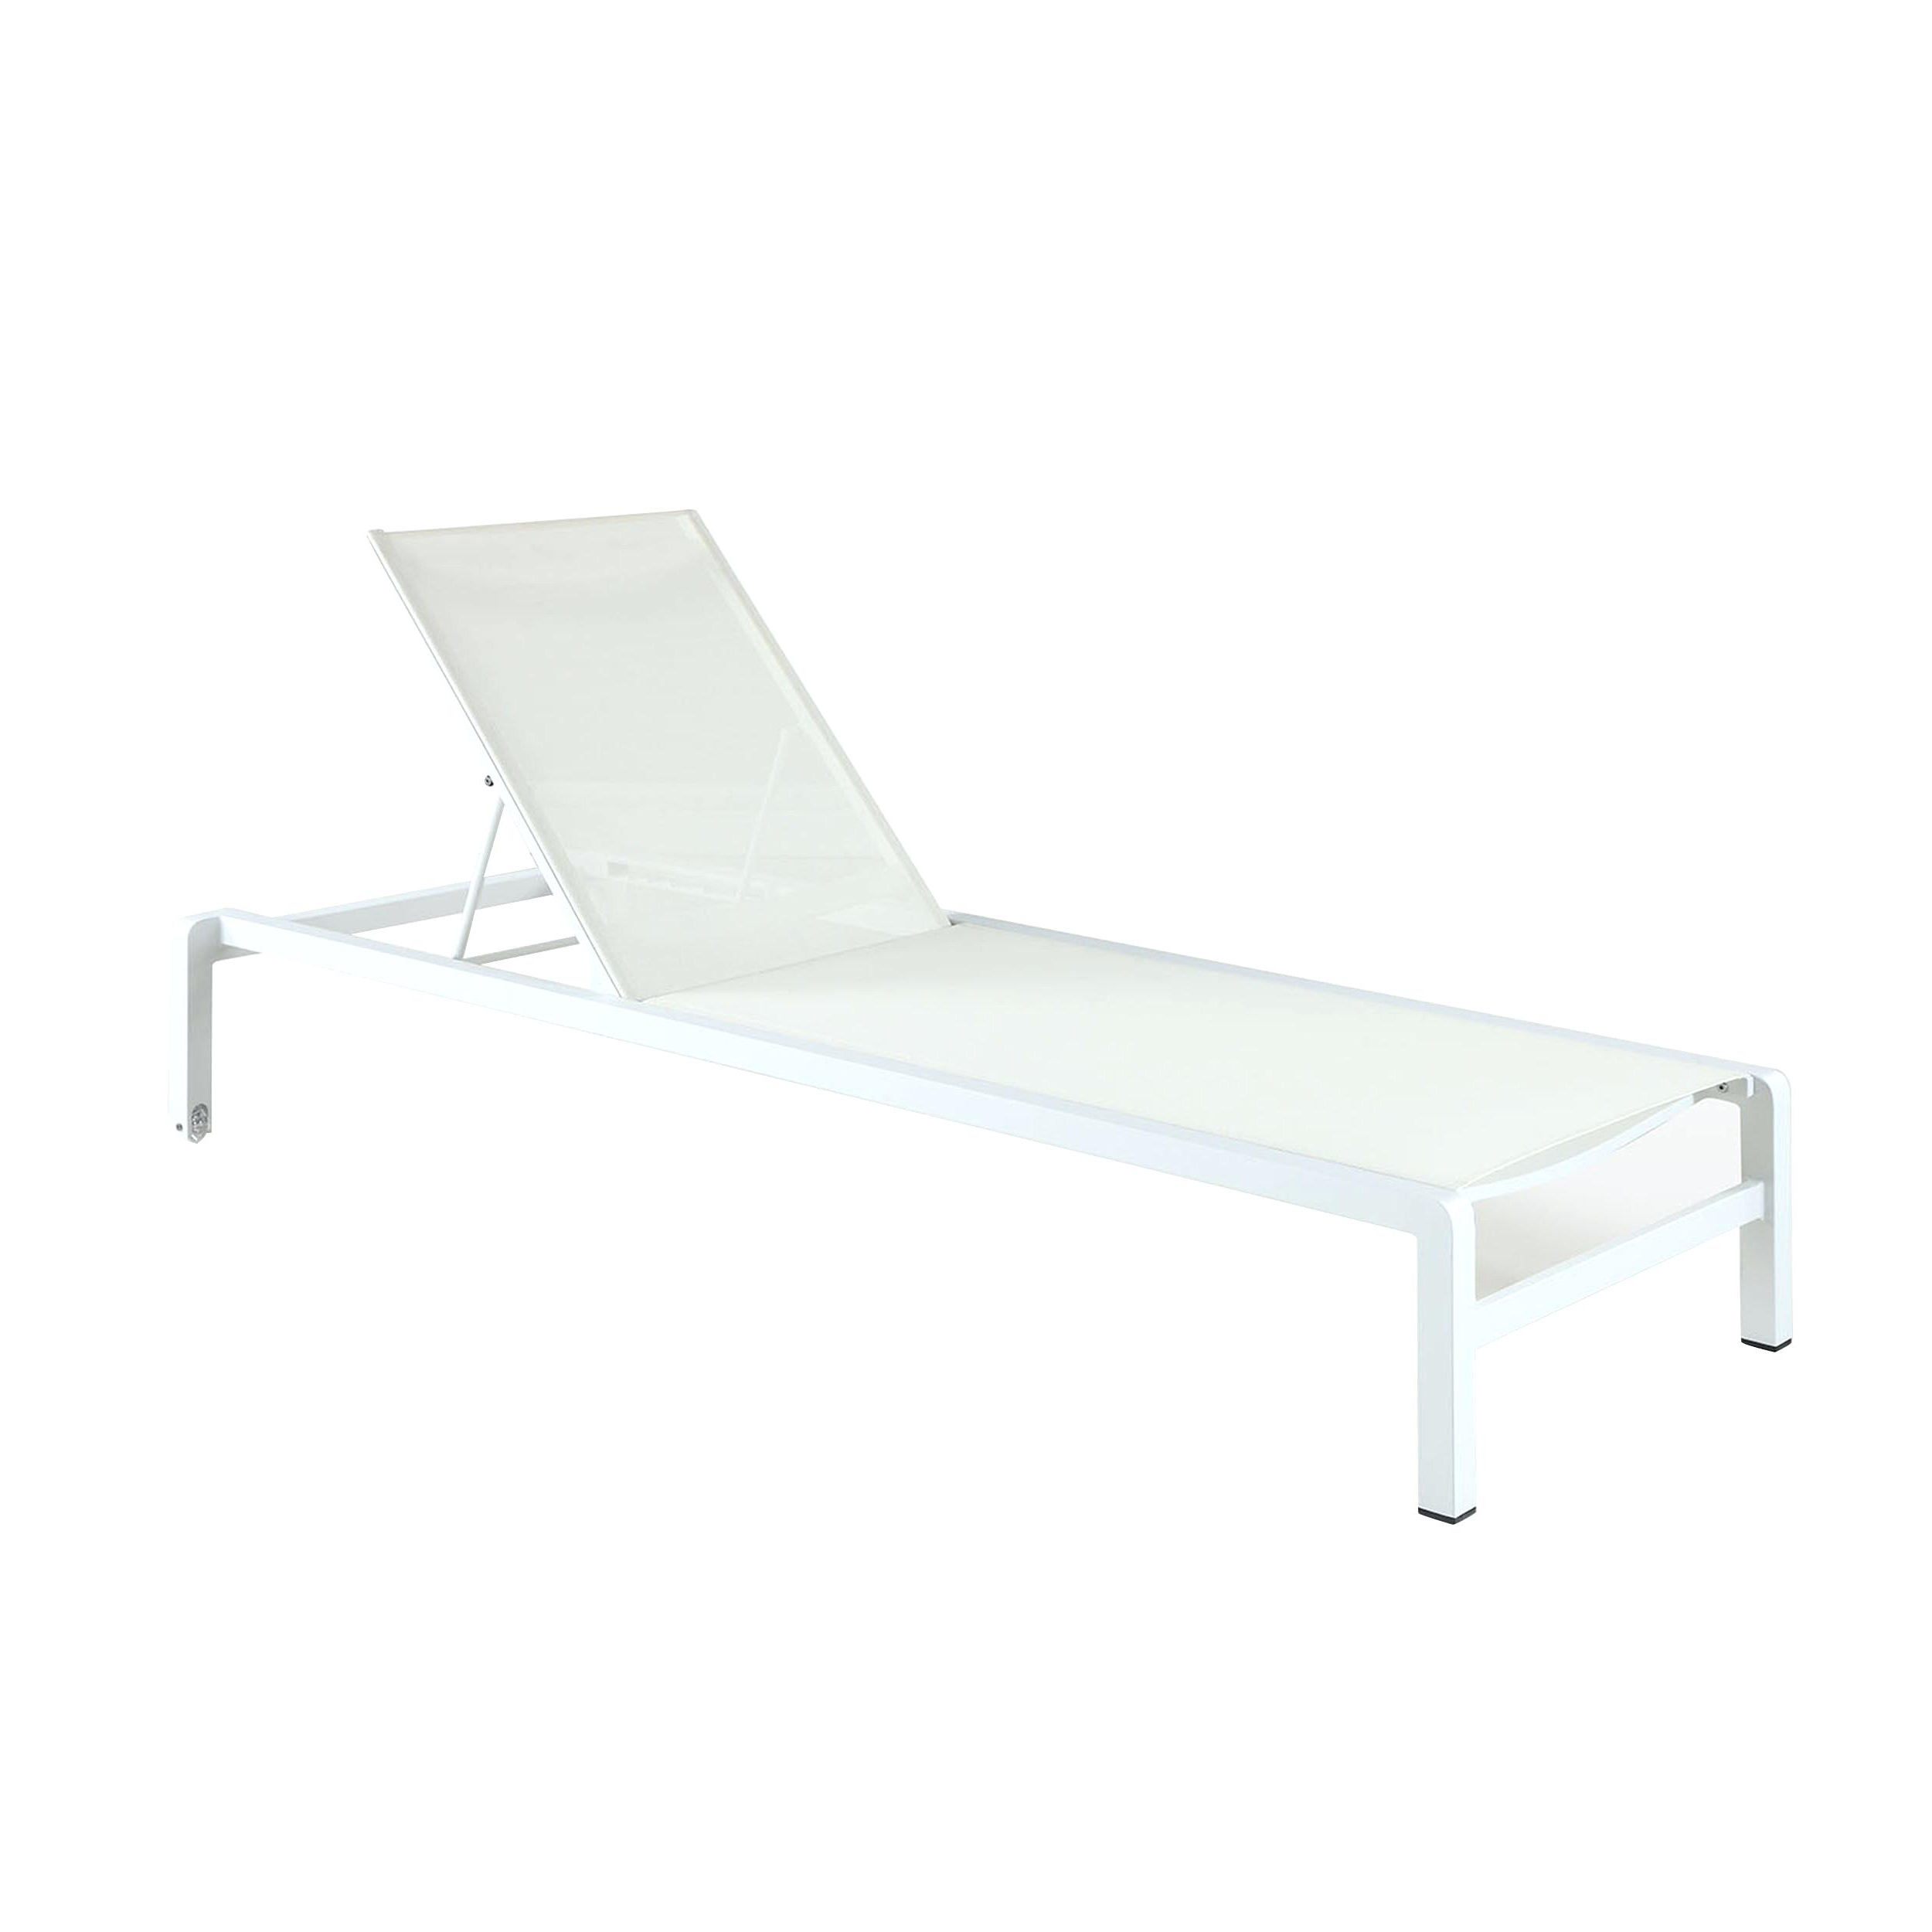 Delectable Aluminum Chaise Lounge Chair Furniture Outdoor Regarding Well Known Floral Blossom Chaise Lounge Chairs With Cushion (View 9 of 25)